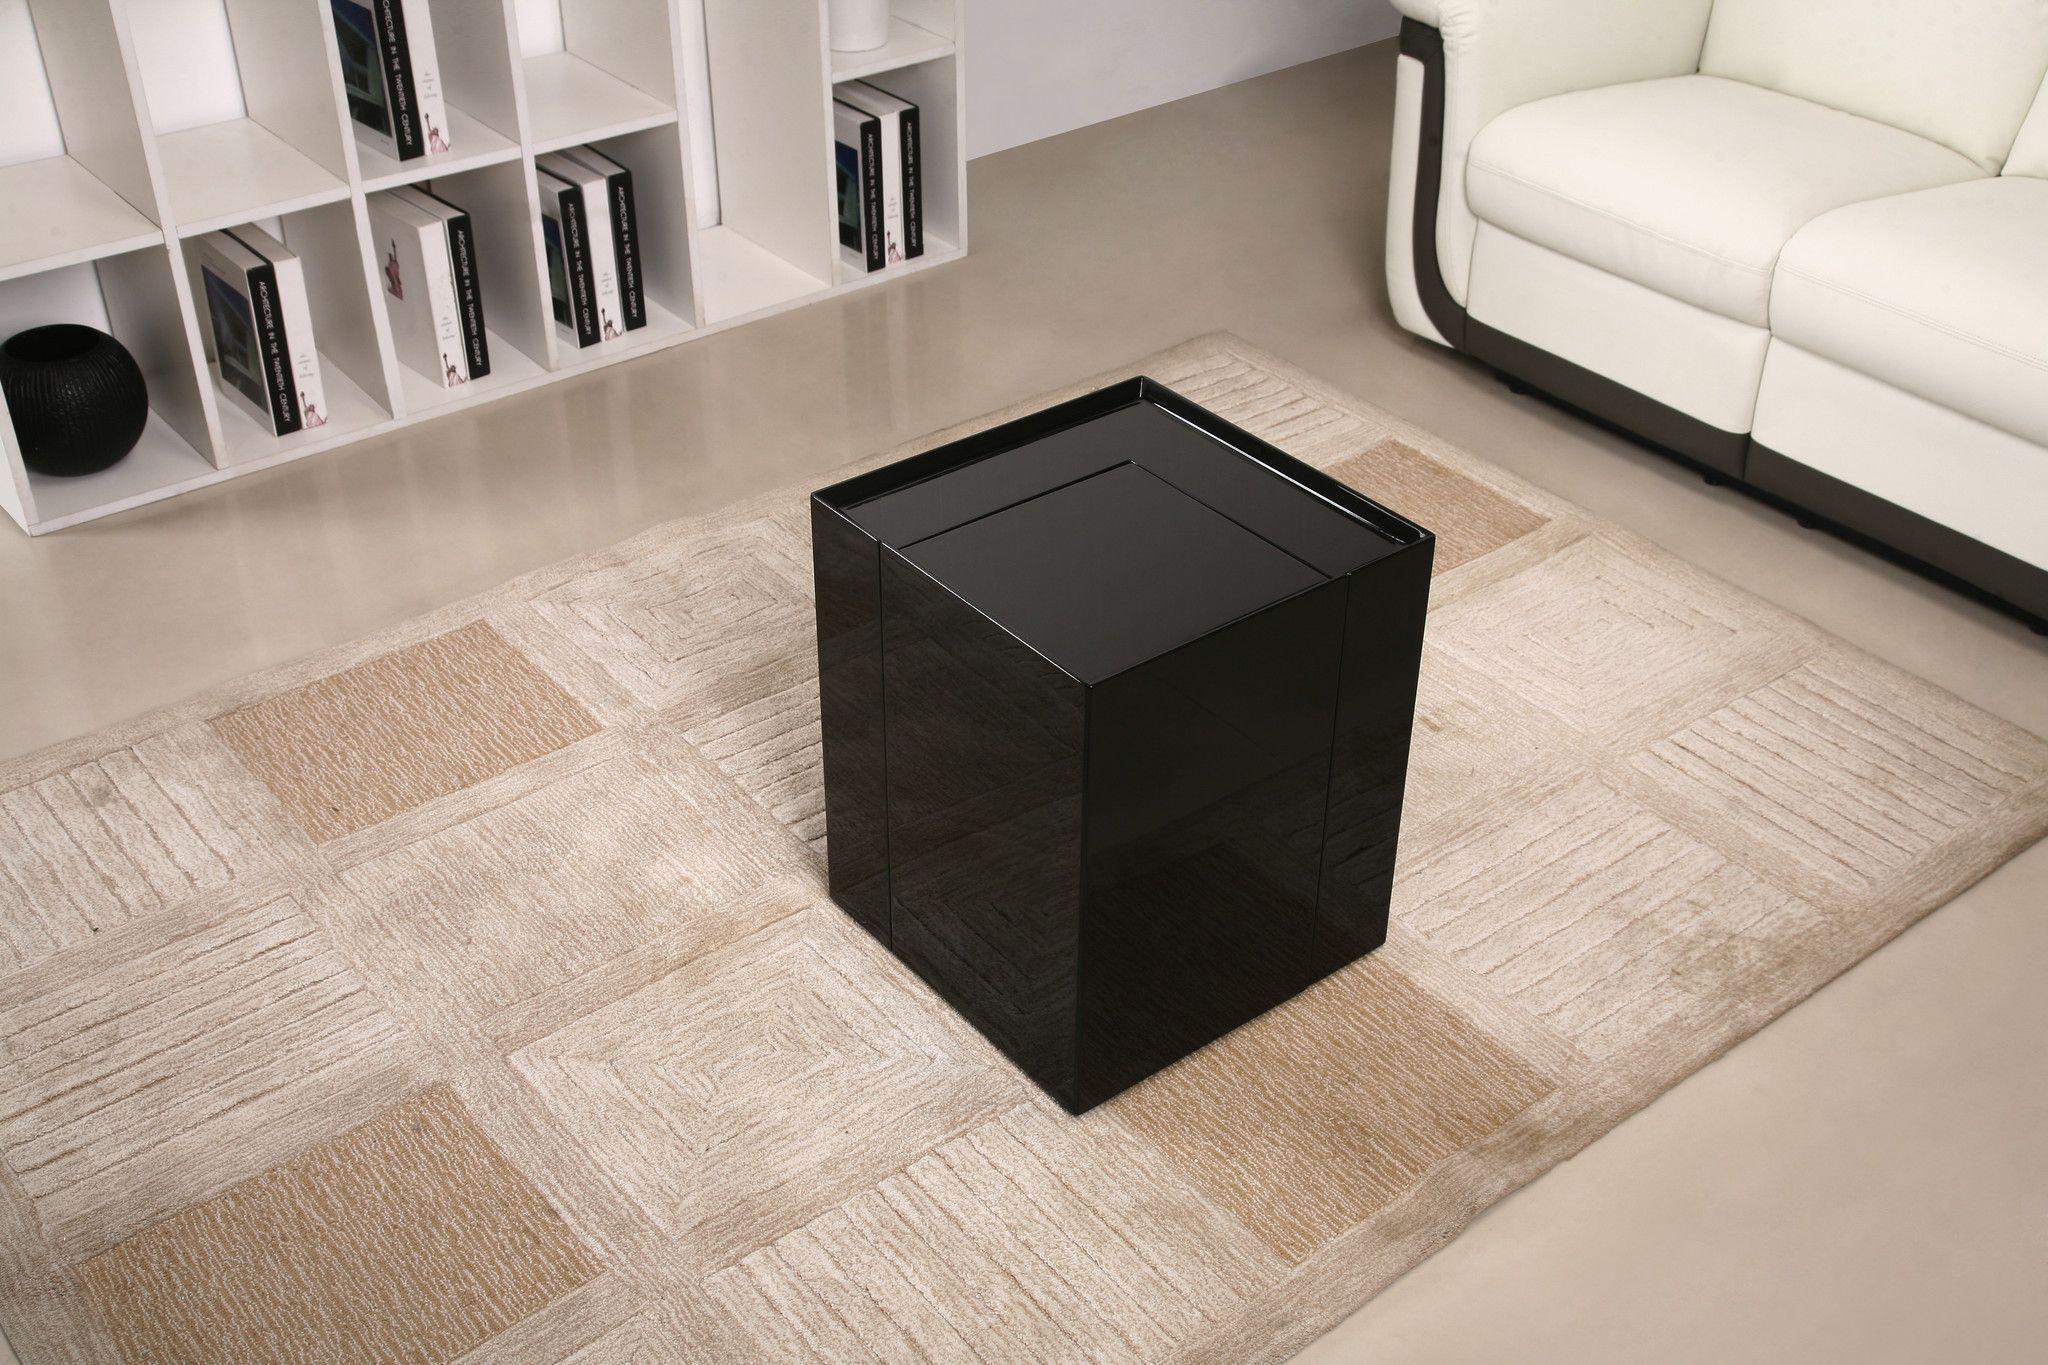 P205B MINI BAR SIDE TABLE from 7 FURNITURE LIVING